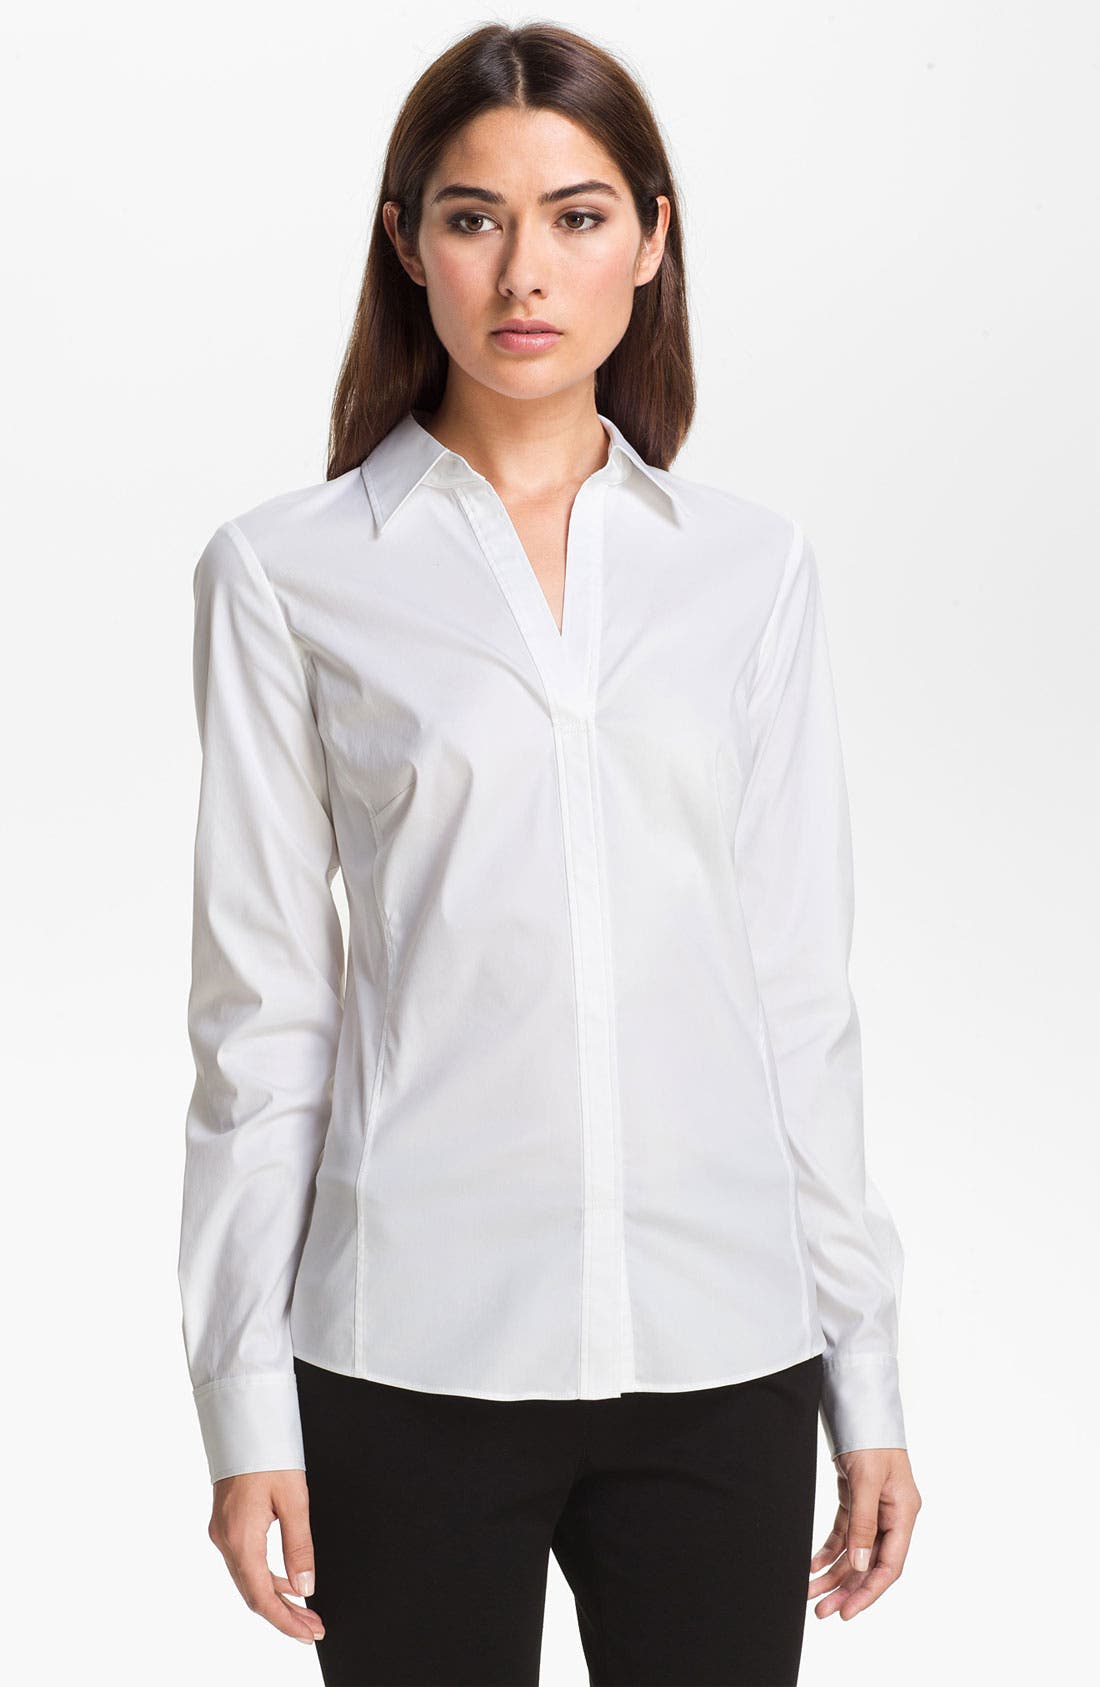 Alternate Image 1 Selected - Lafayette 148 New York 'Katie' Blouse (Online Only)